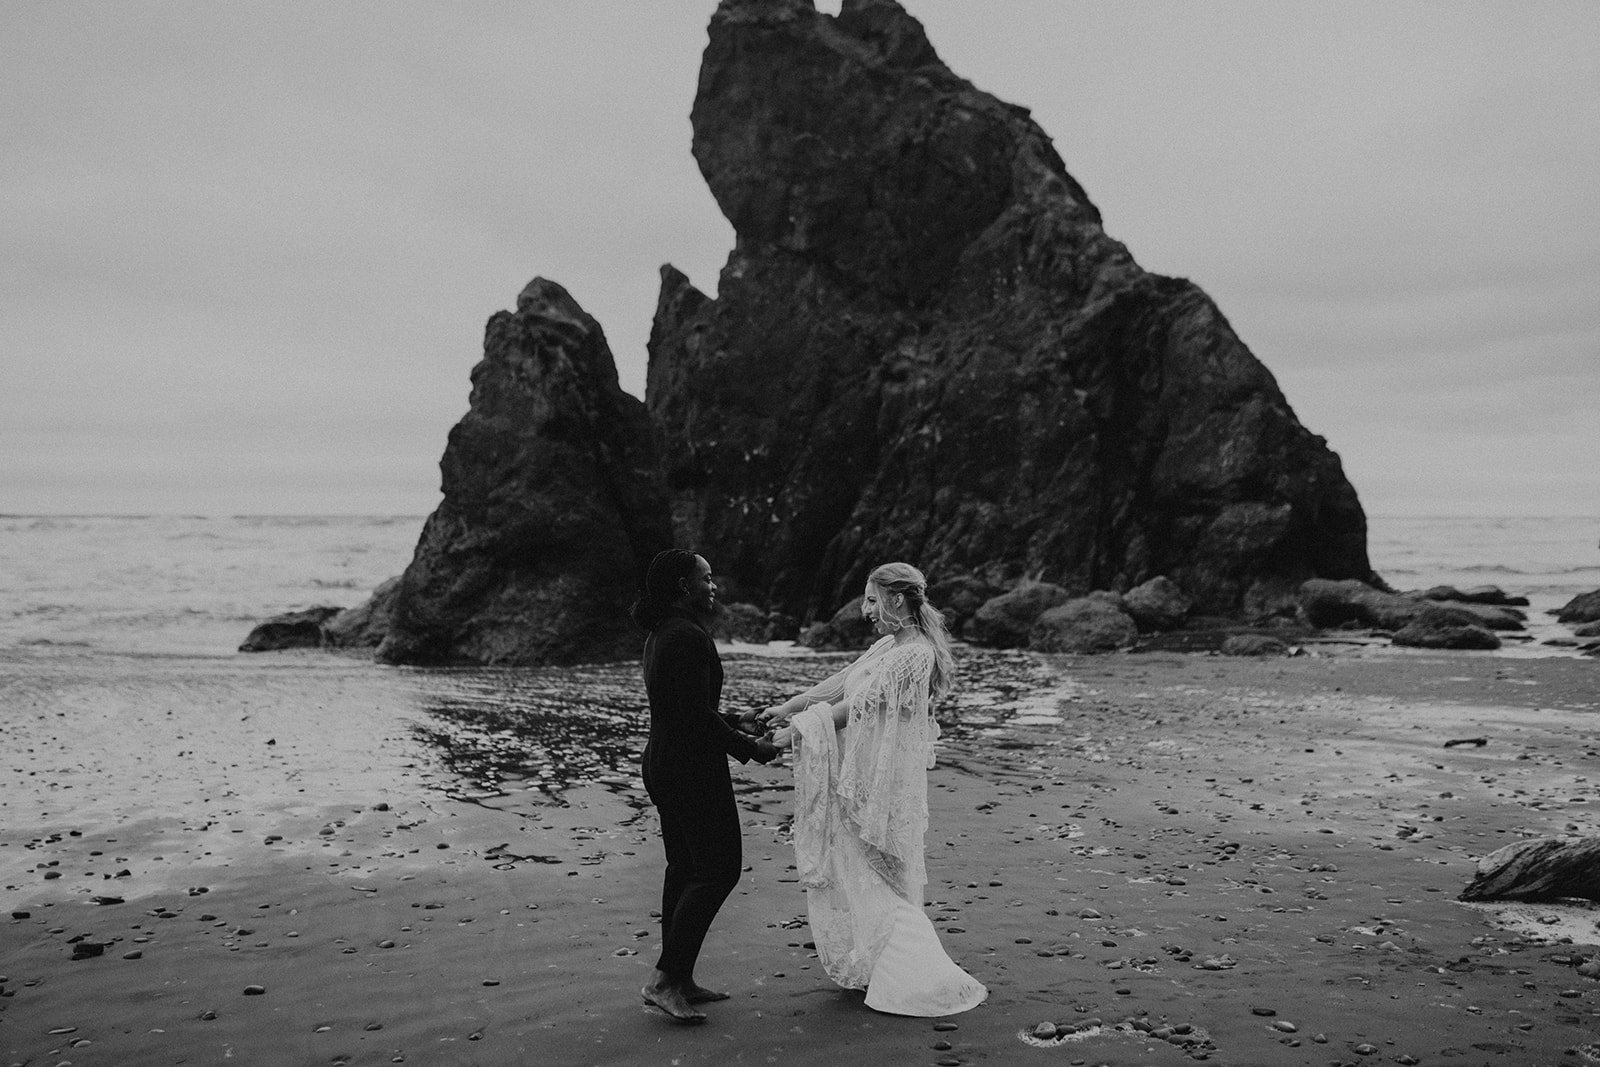 Ruby_Beach_Styled_Elopement_-_Run_Away_with_Me_Elopement_Collective_-_Kamra_Fuller_Photography_-_Portraits-166